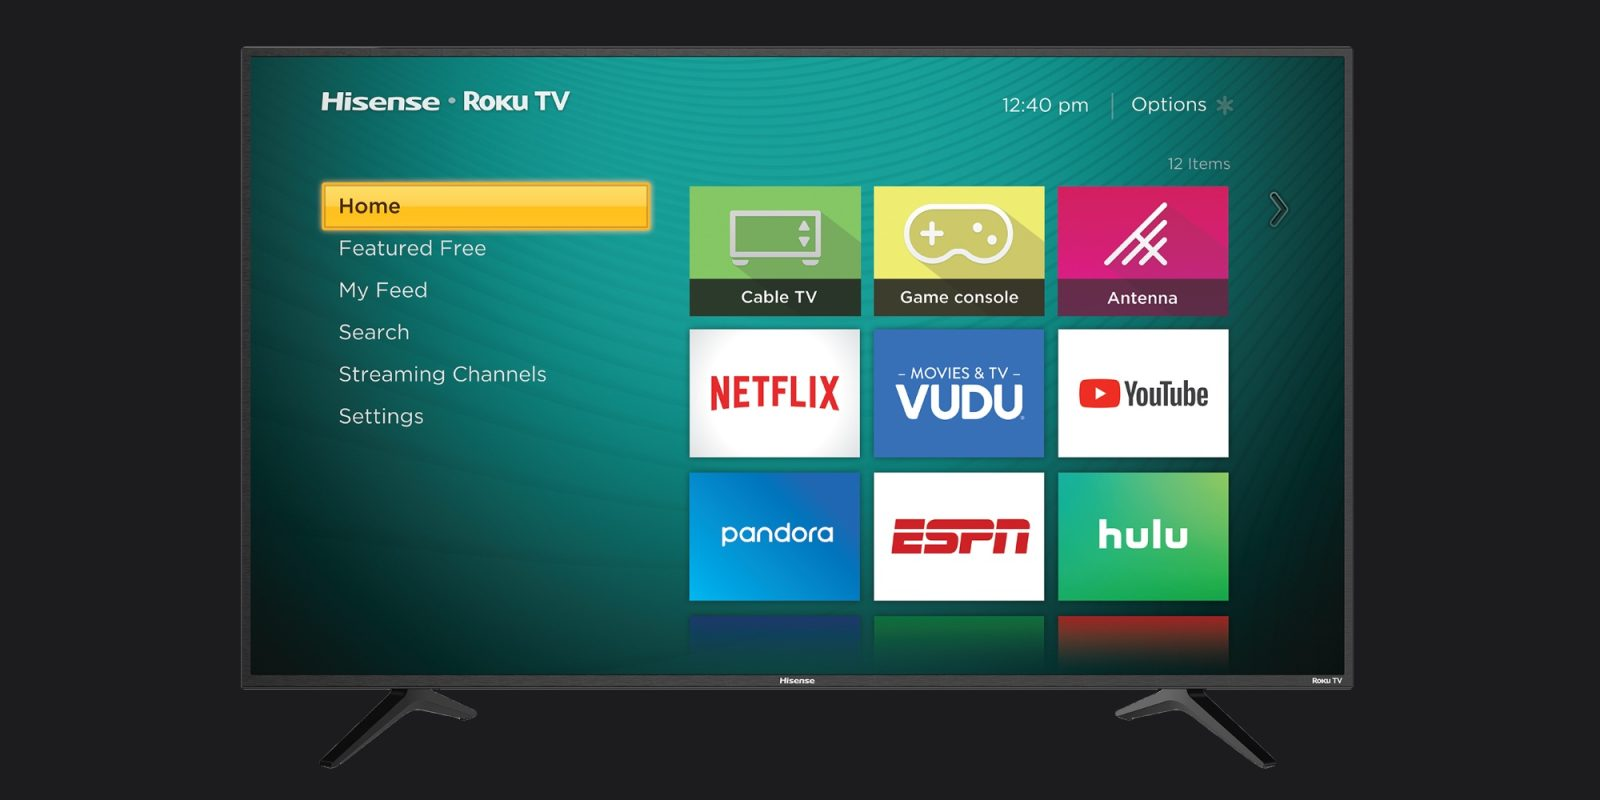 Hisense 50-inch 4K HDR UHDTV has Roku and Apple TV support